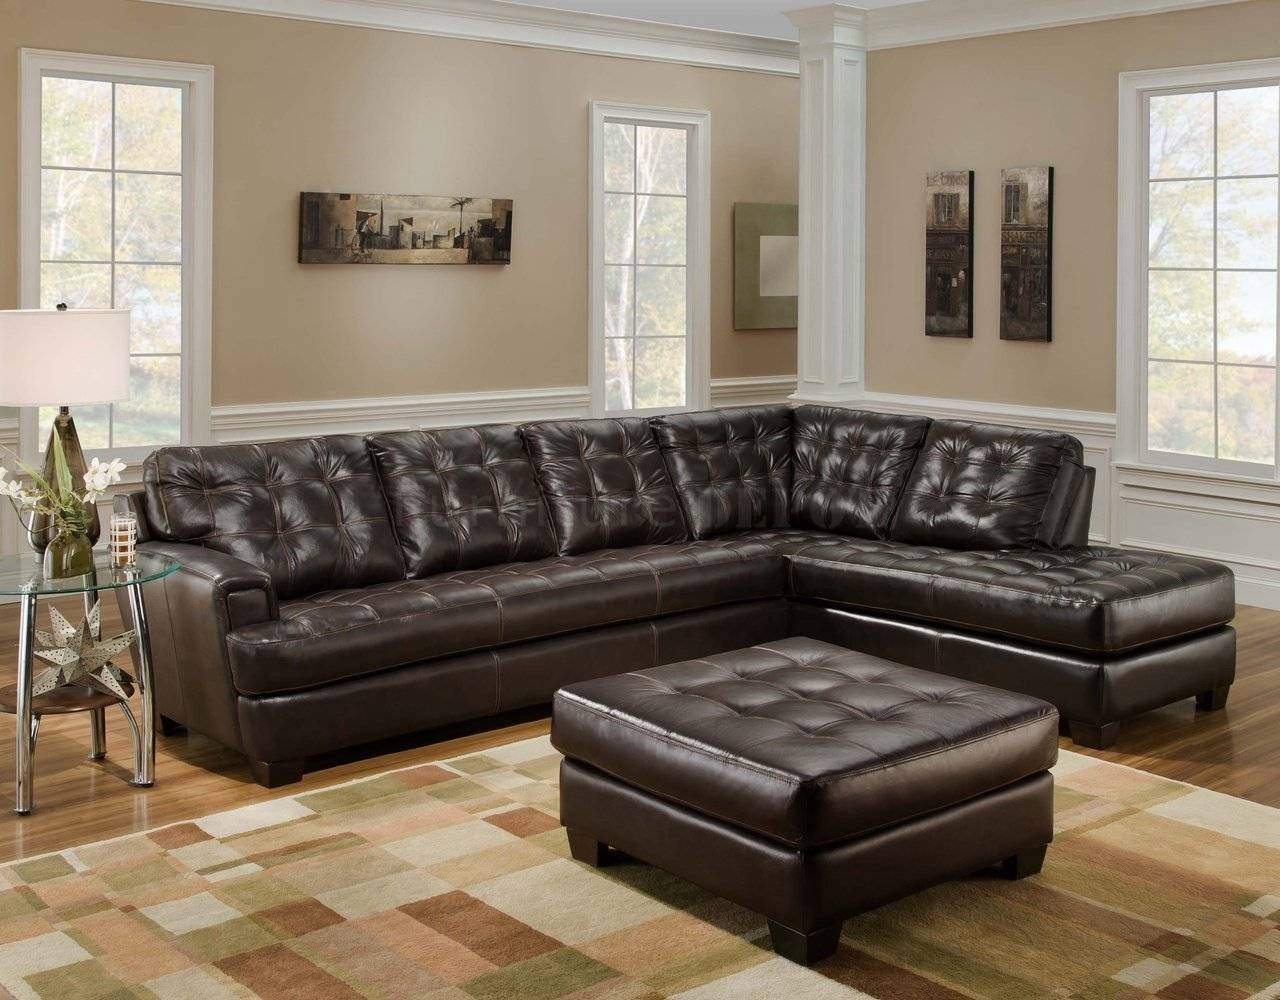 25 best ideas of tufted sectional sofa chaise. Black Bedroom Furniture Sets. Home Design Ideas